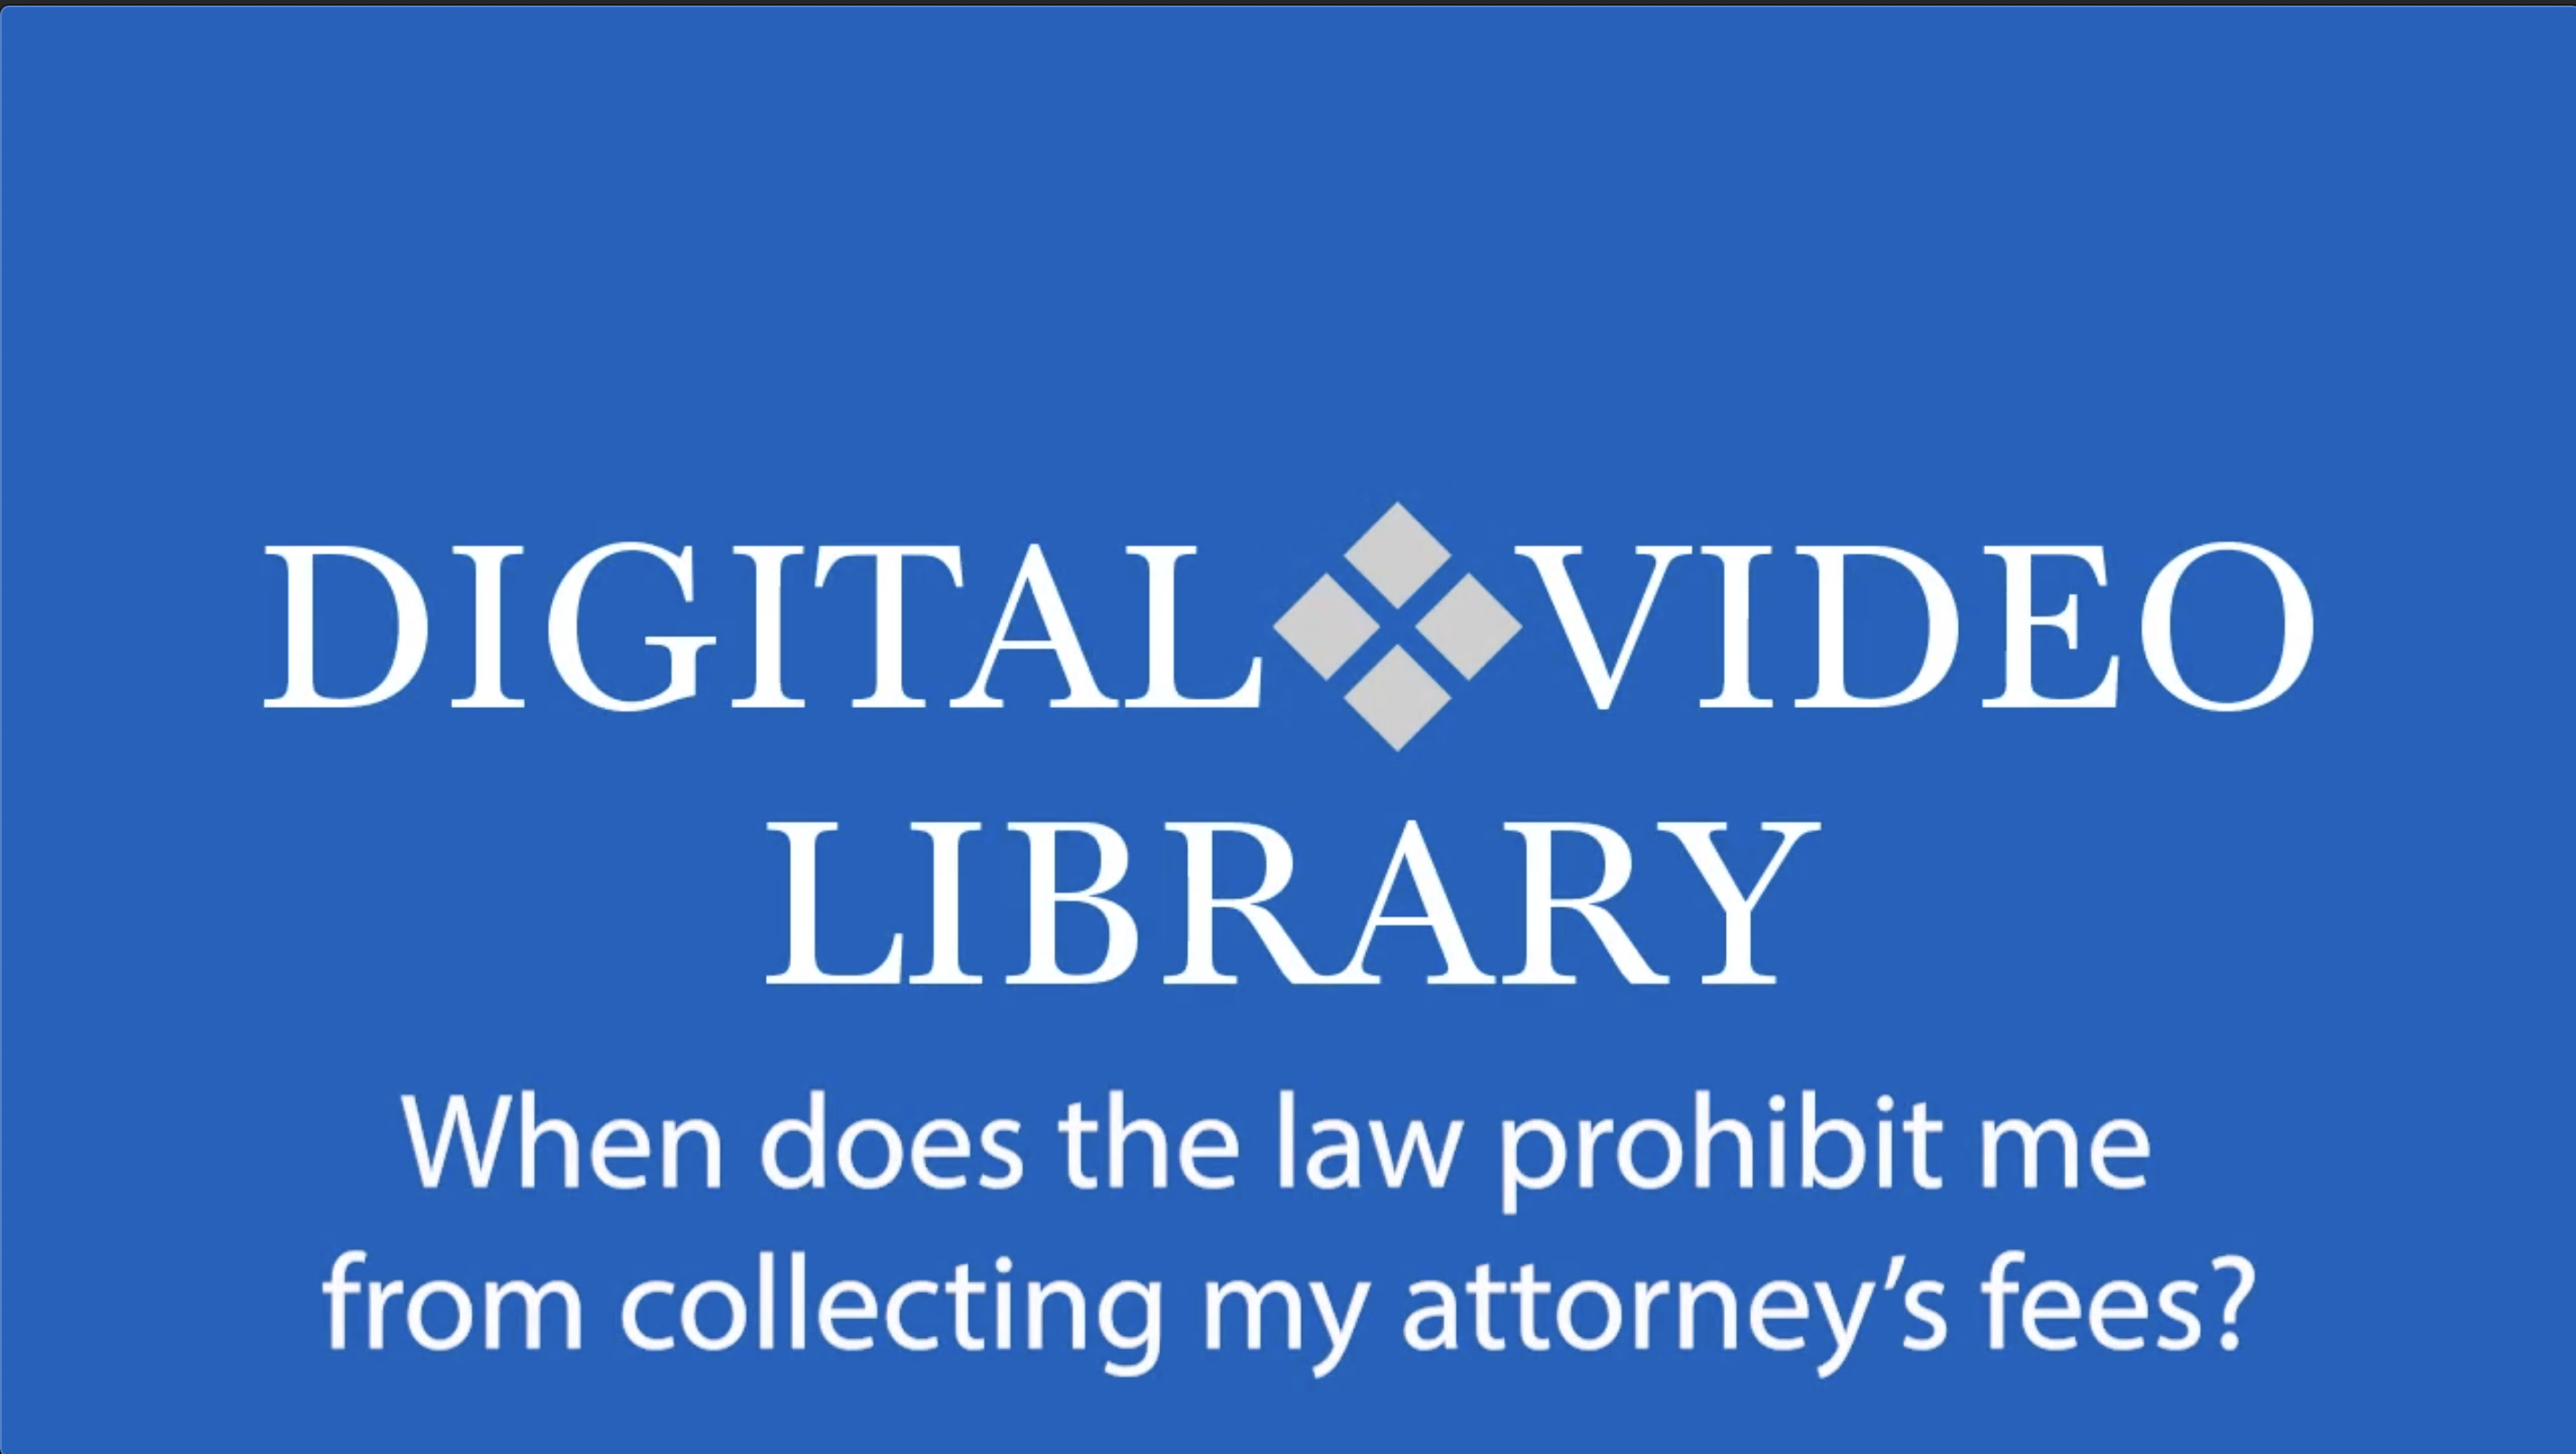 When Does the Law Prohibit Me from Collecting My Attorney's Fees?